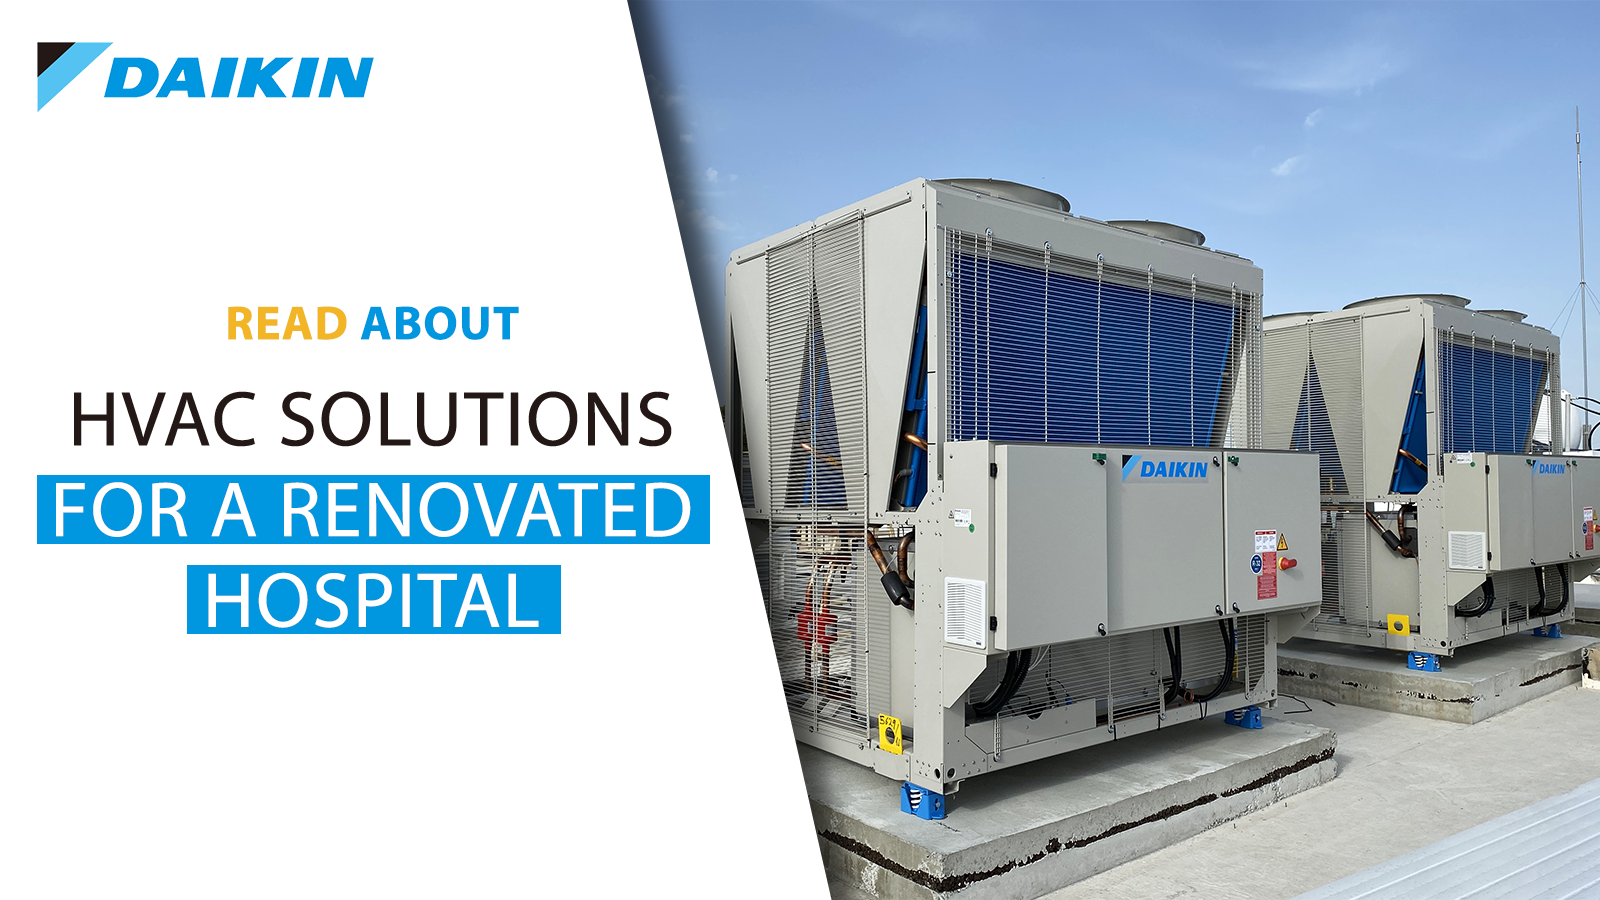 HVAC solutions for a renovated hospital